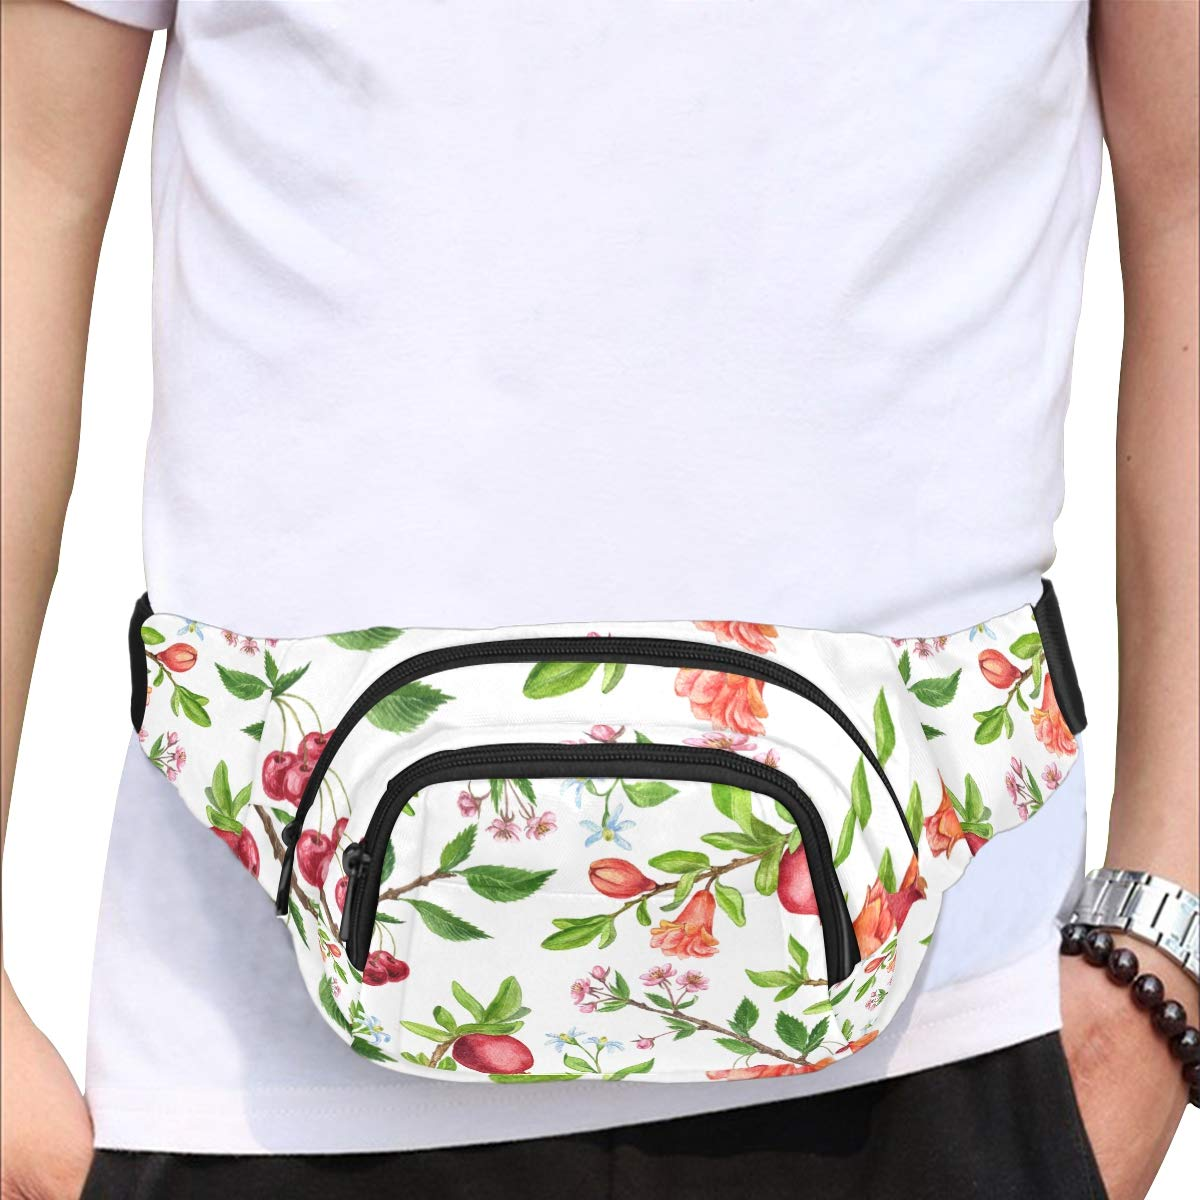 Durian Fruit With Leaves And Flowers Fenny Packs Waist Bags Adjustable Belt Waterproof Nylon Travel Running Sport Vacation Party For Men Women Boys Girls Kids